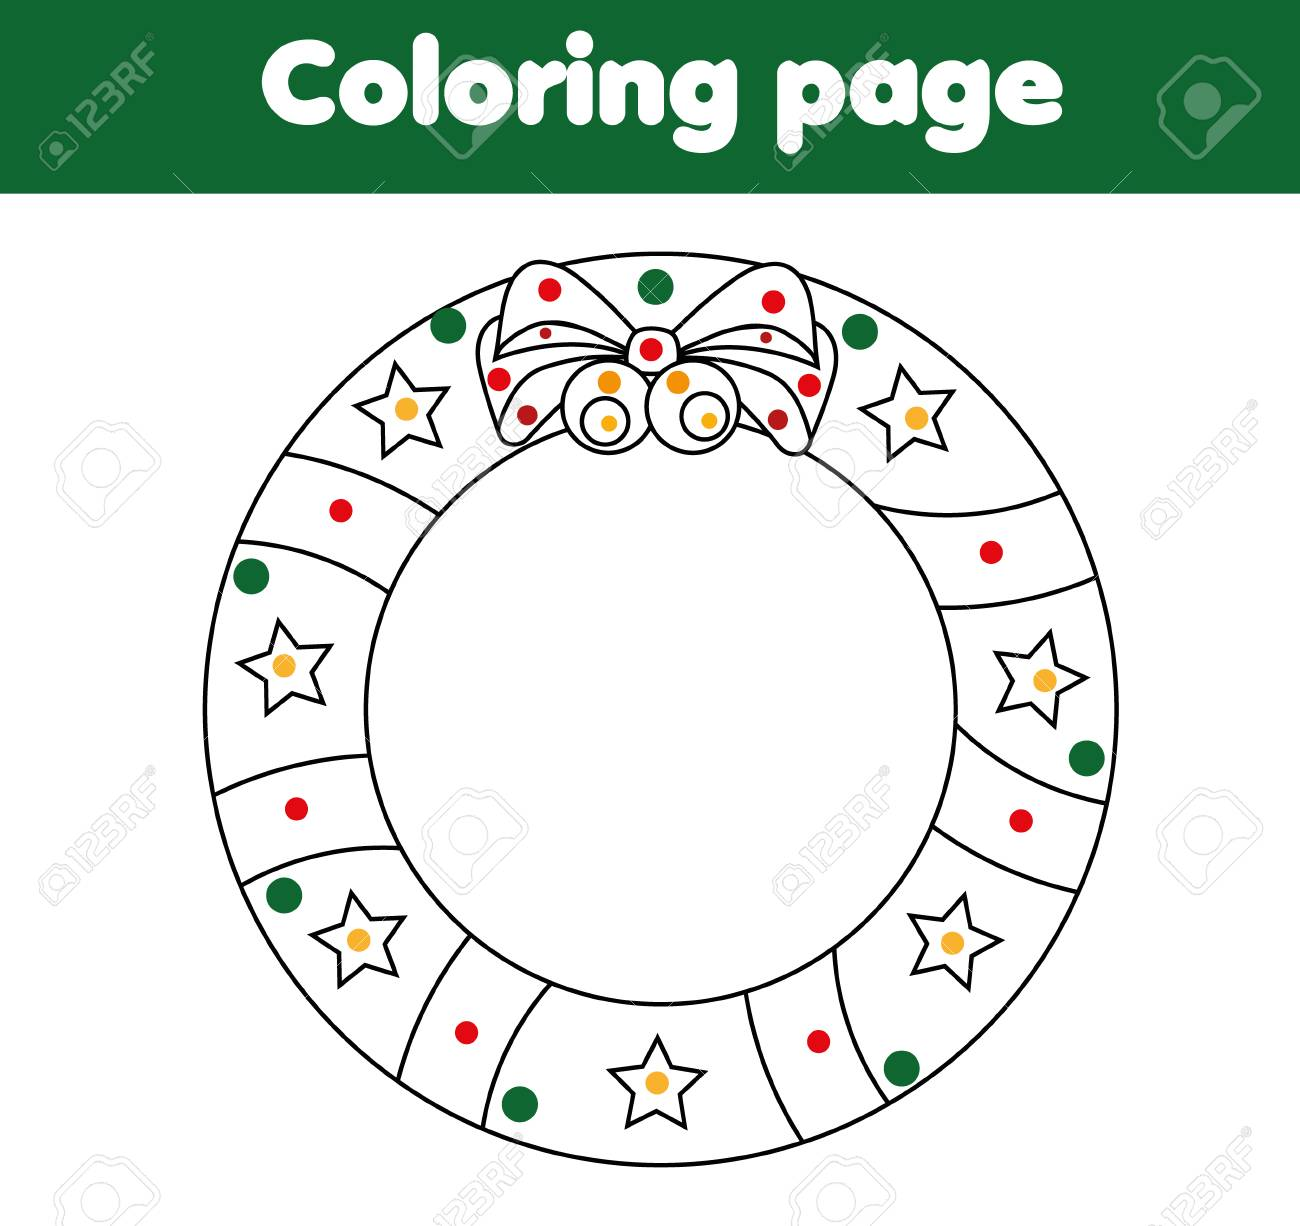 picture relating to Christmas Wreath Printable titled Coloring site for youngsters with Xmas wreath. Drawing recreation,..